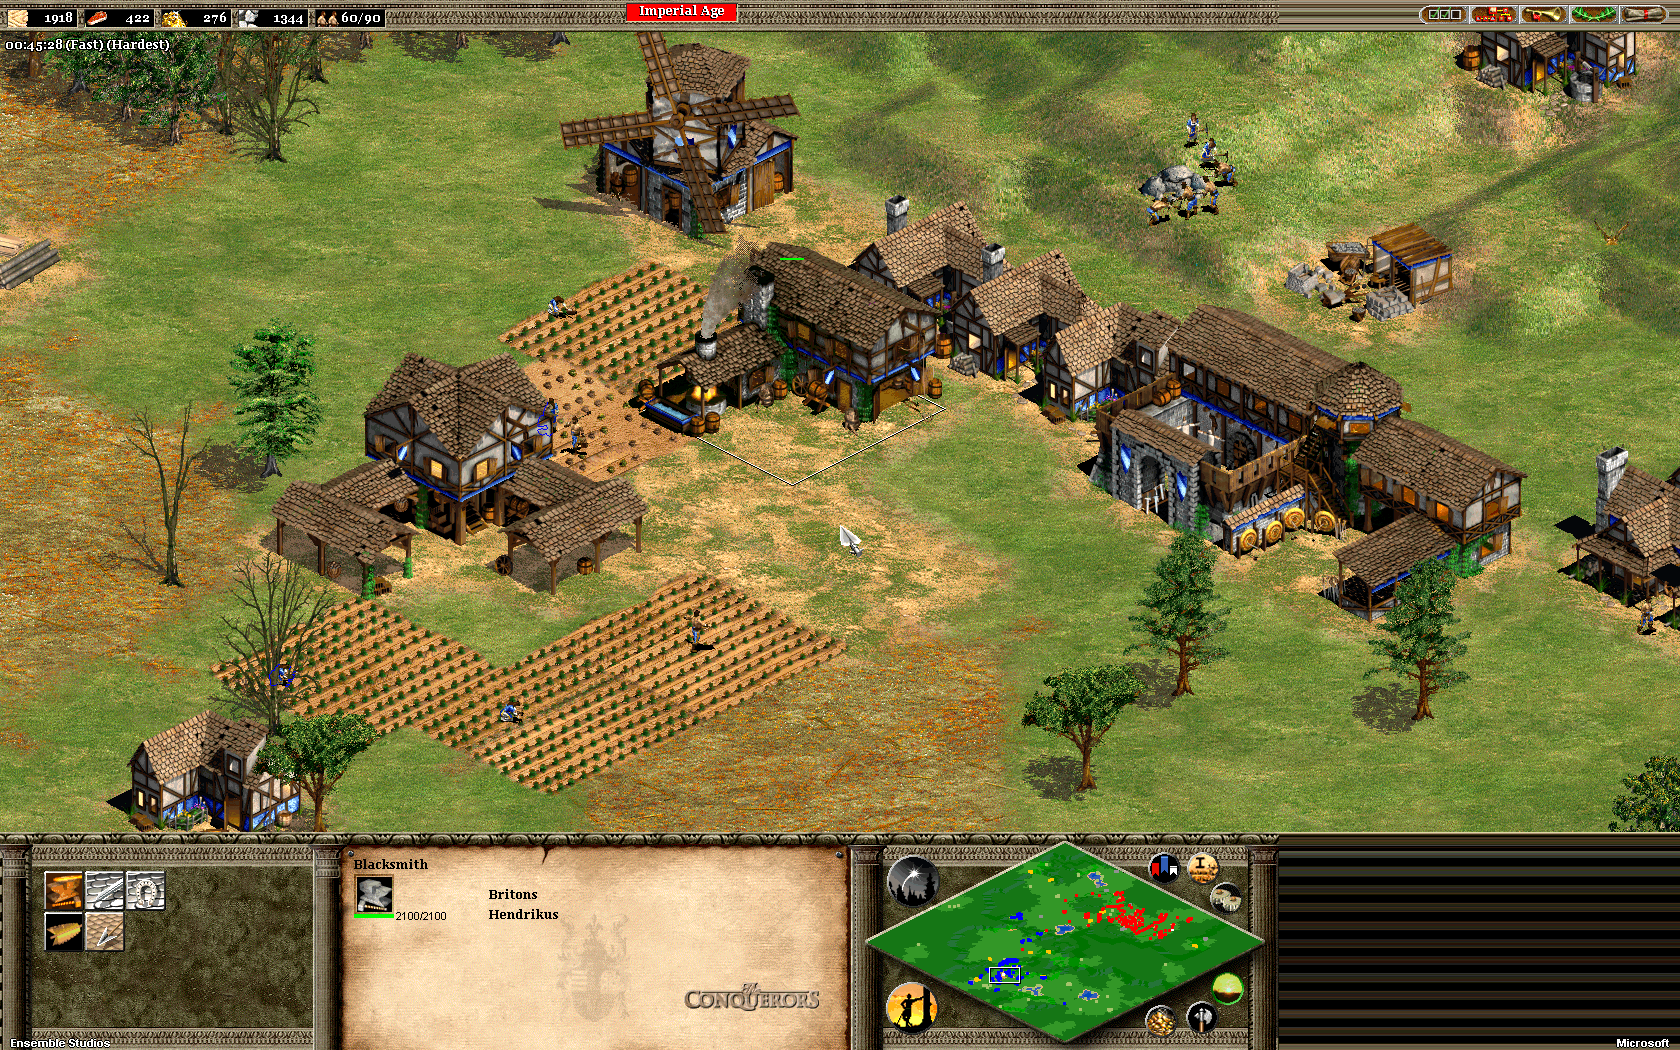 Age of empires 2 conquerors hd patch